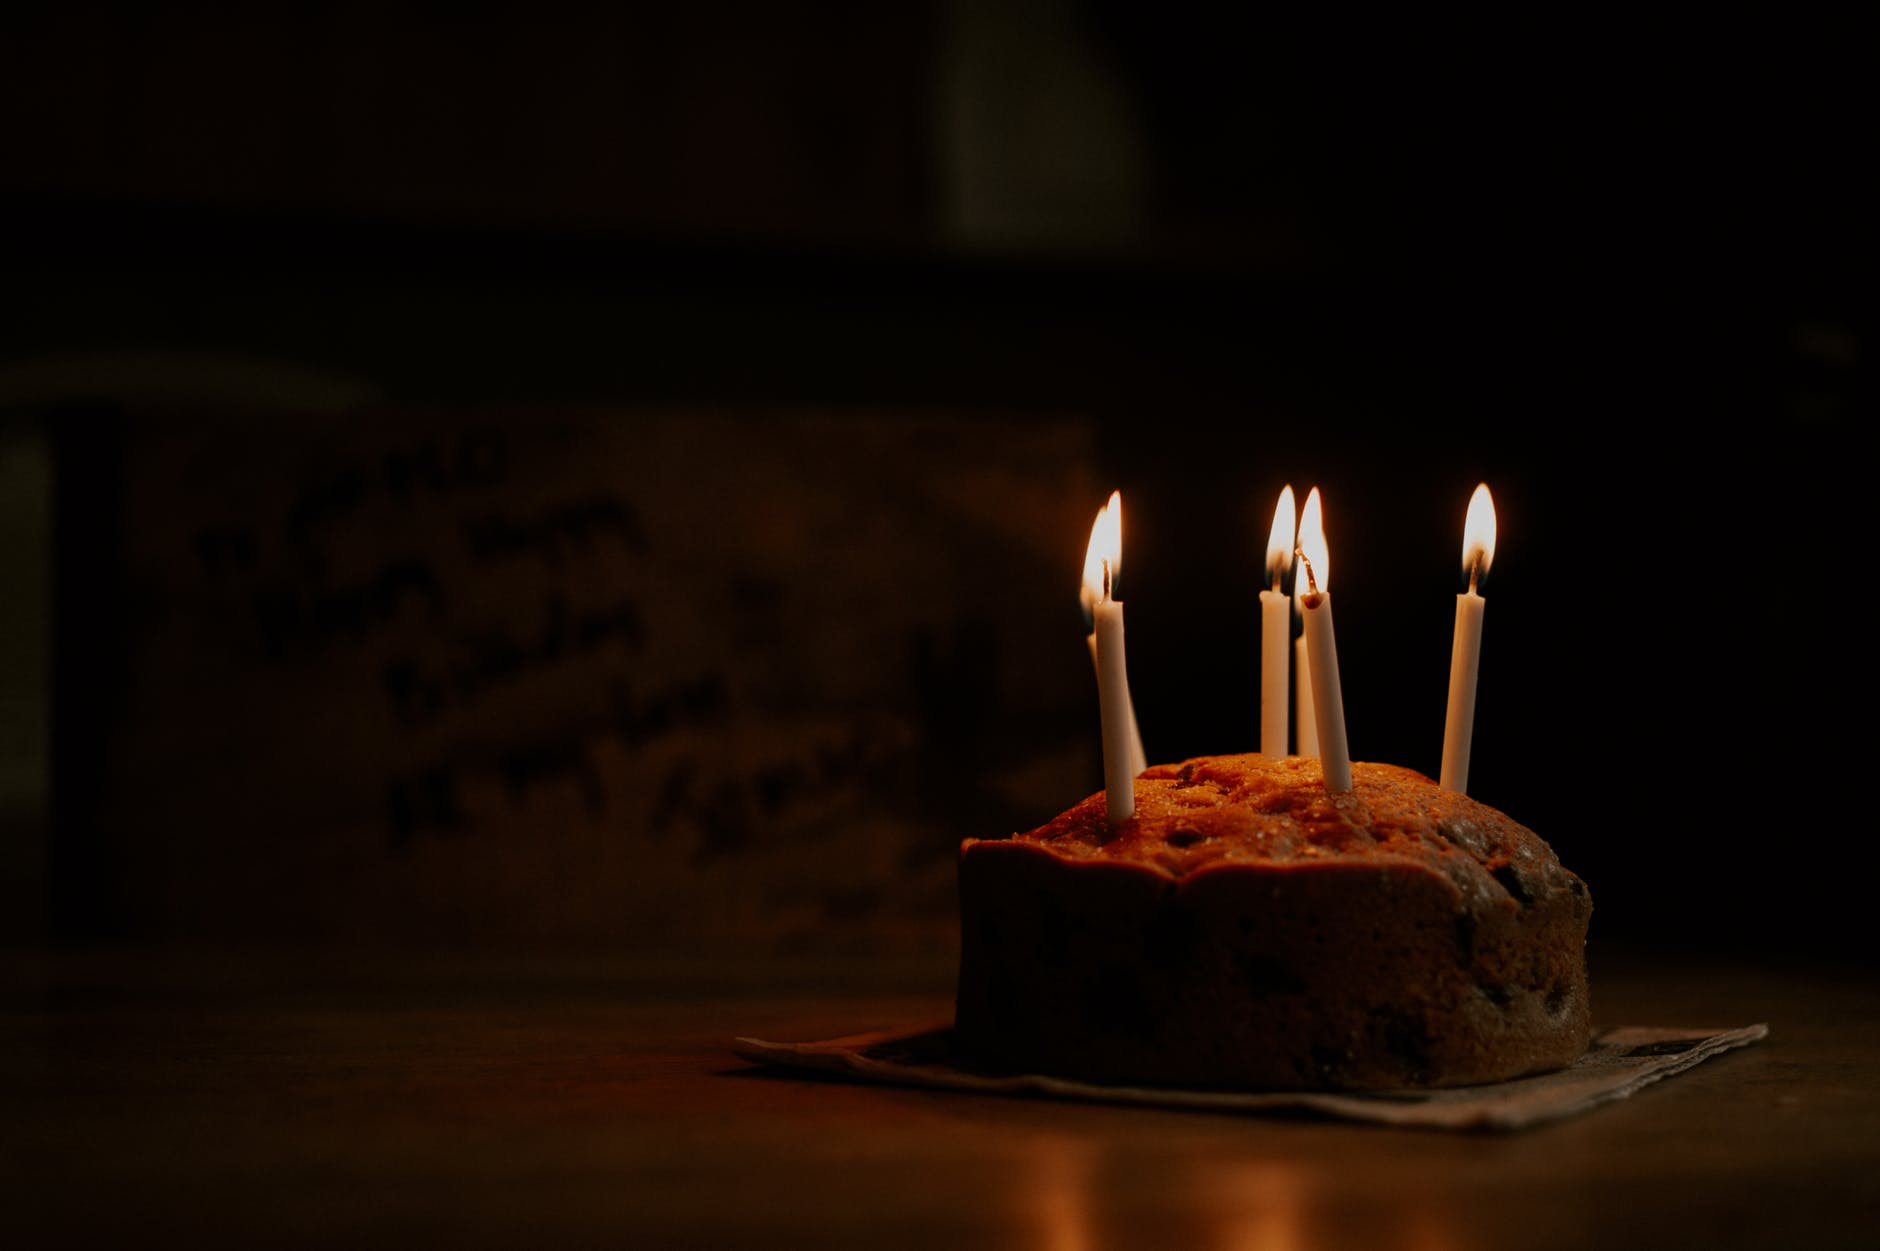 cake with lighted candles